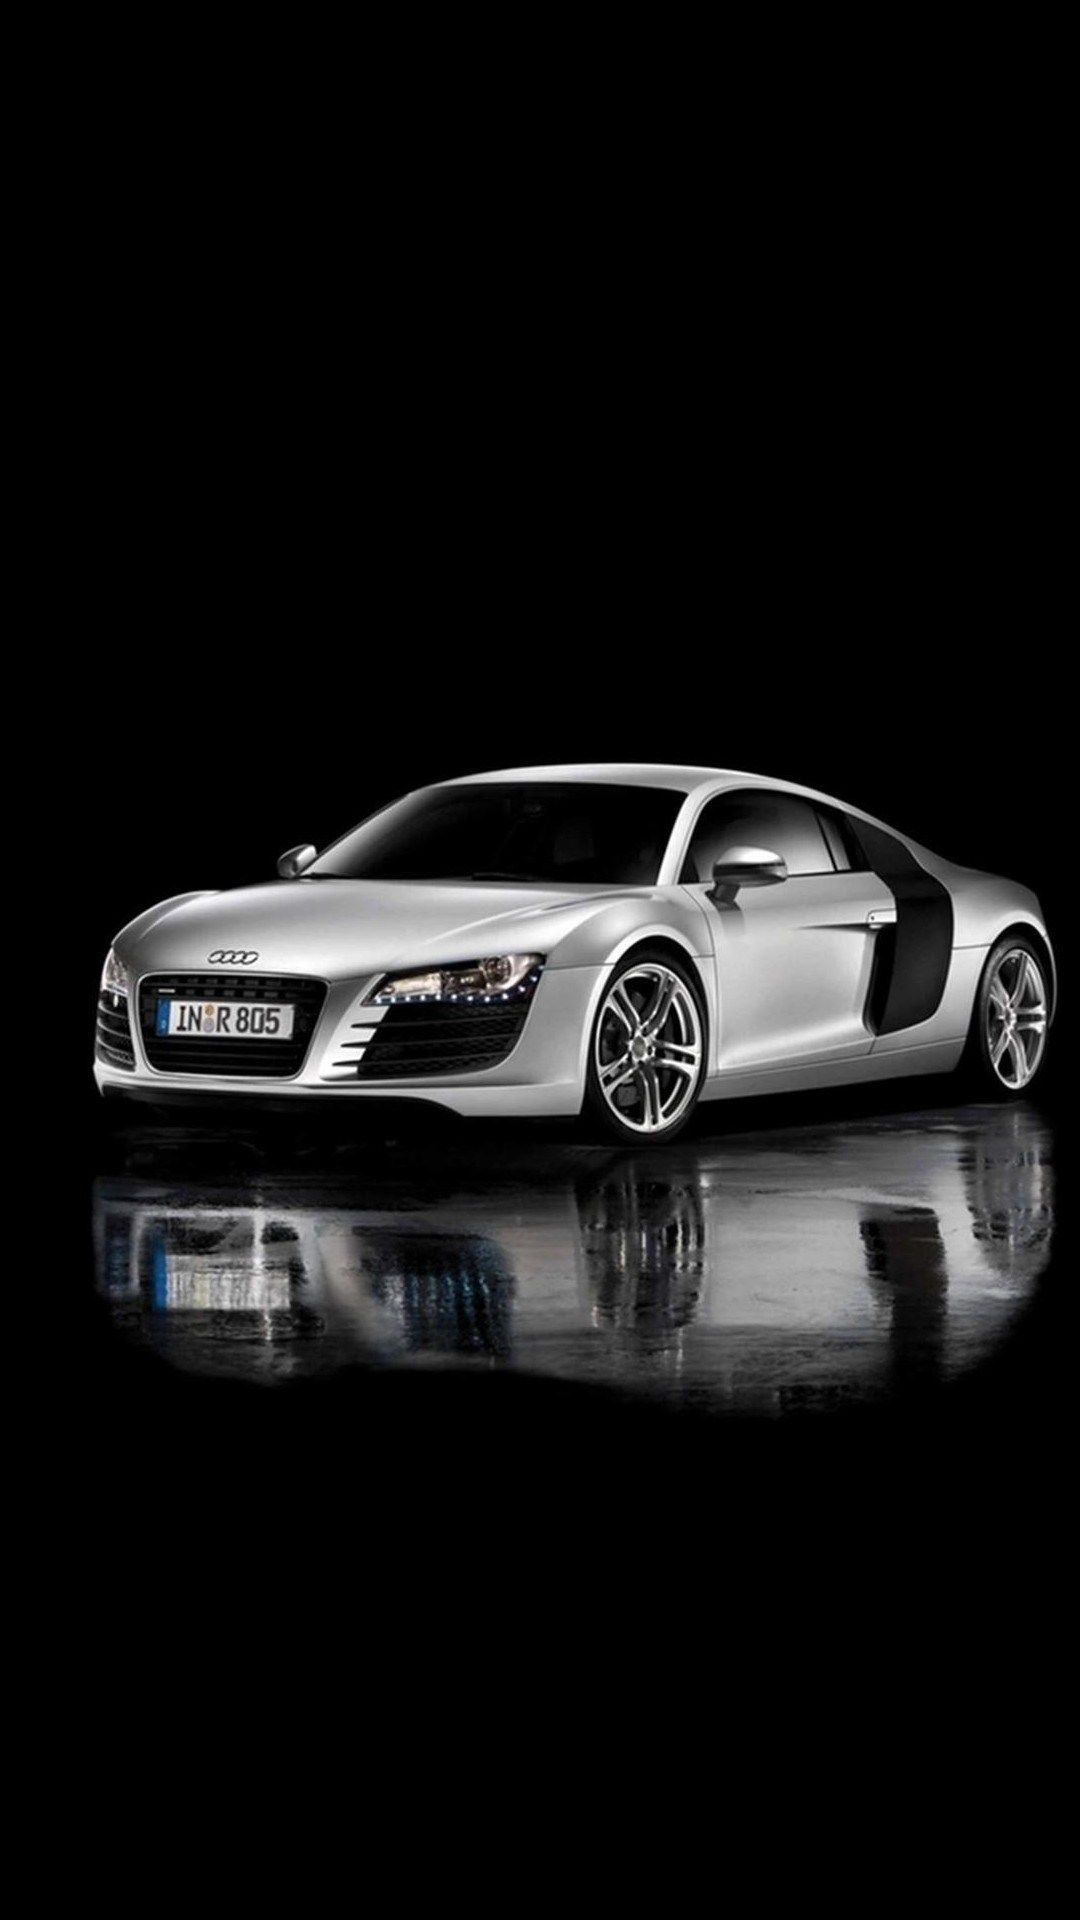 Wallpaper Audi R8 Android Apps On Google Play 4 Door Sports Cars Audi R8 Wallpaper Audi Cars